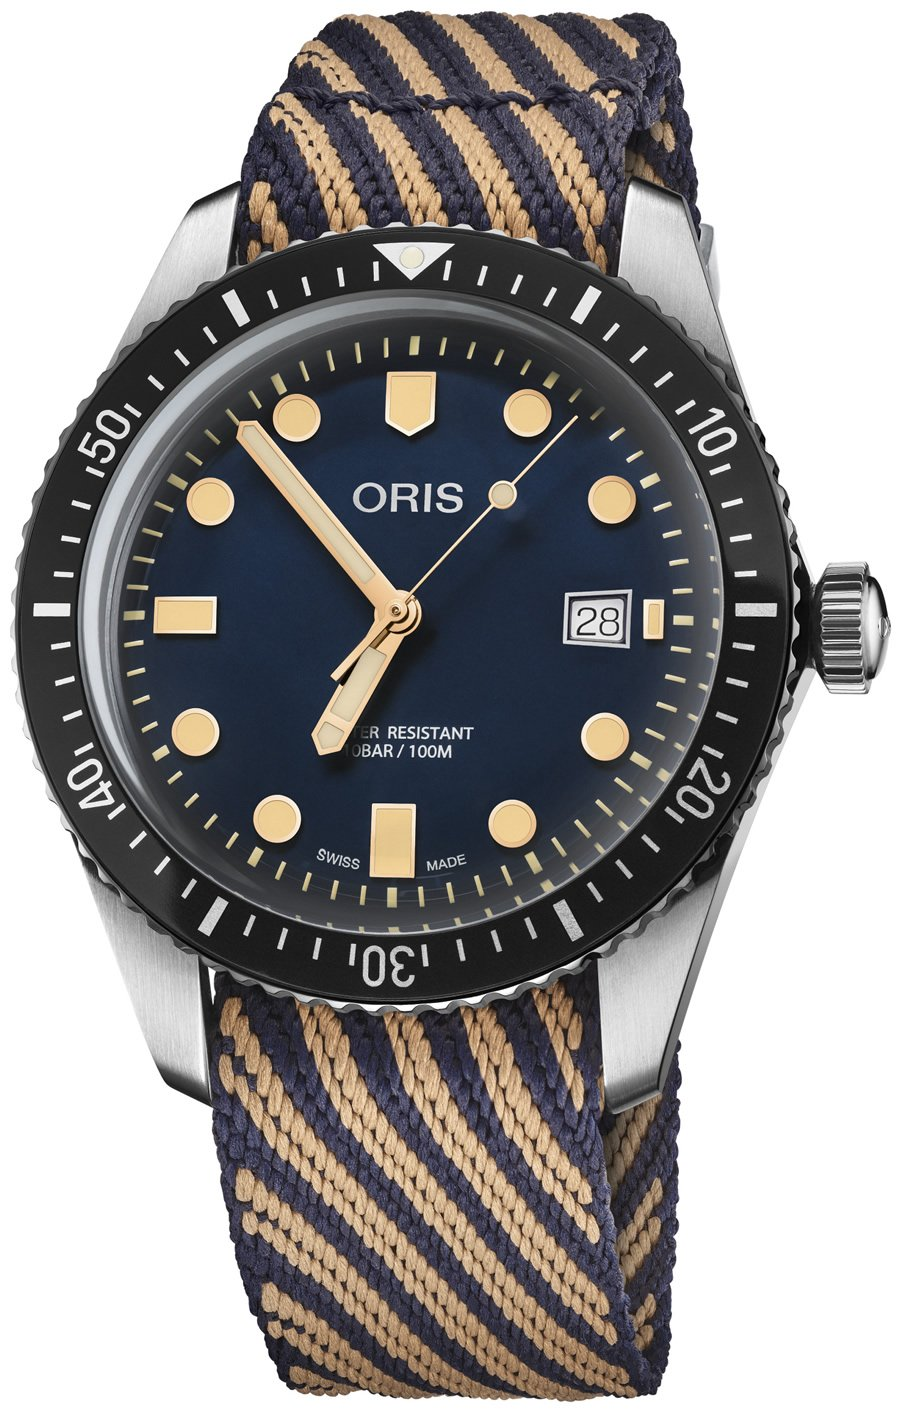 Oris Watch Divers Sixty Five World Clean Up Day Special Edition